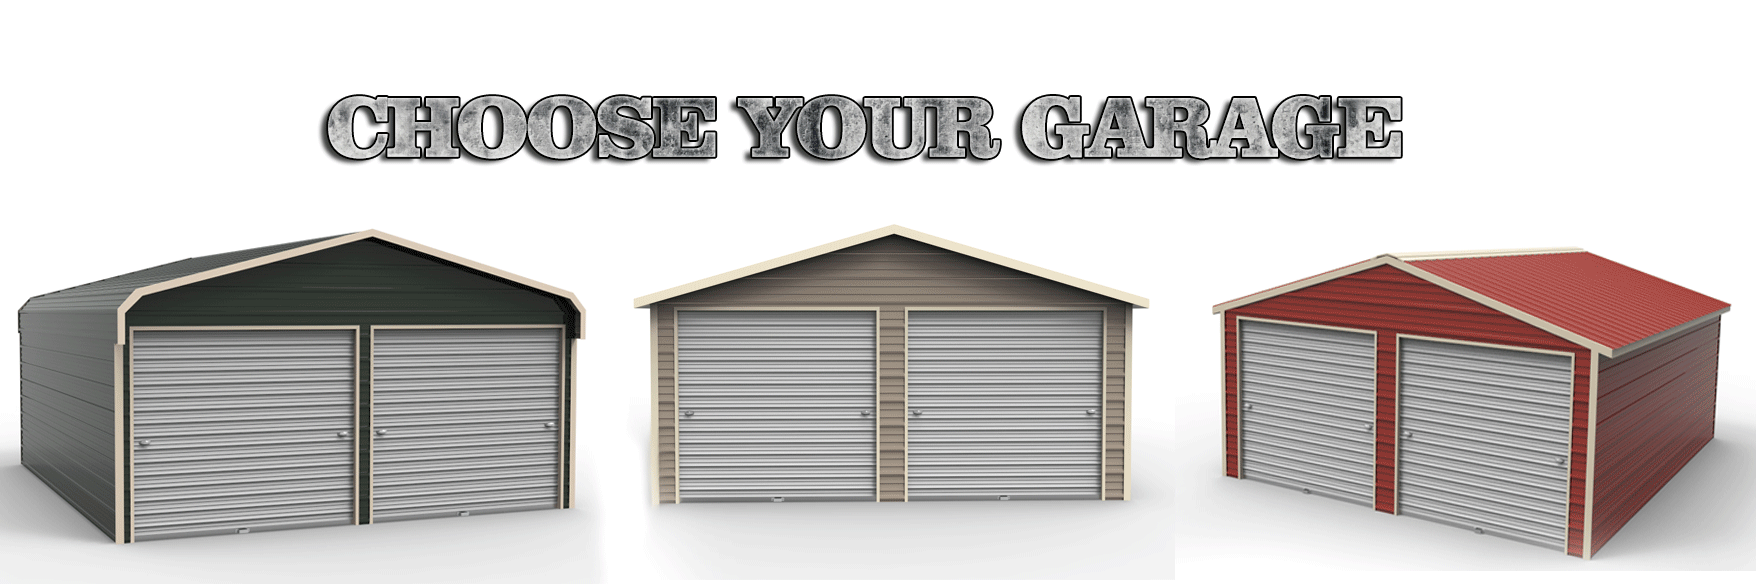 steel structures usa steel buildings usa steel buildings inc has a wide selection of standard garage sizes which are suitable for most of our customers we can also create custom garages